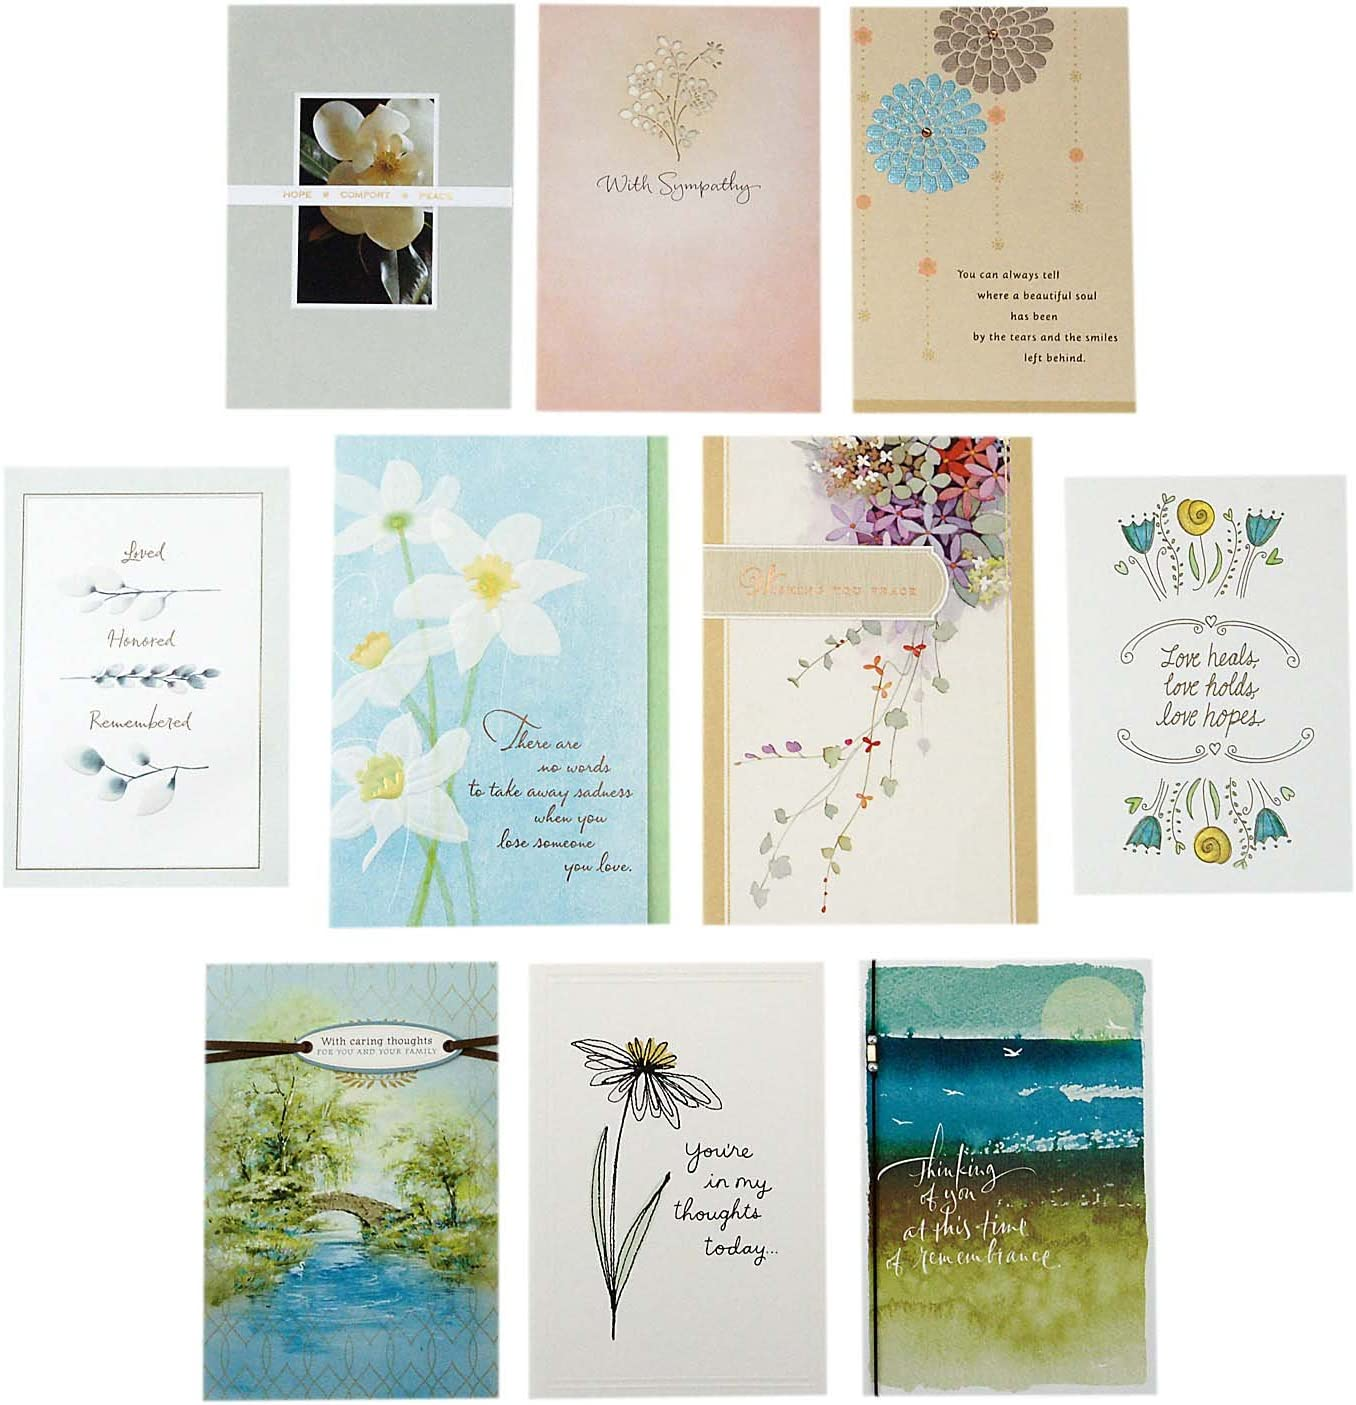 Hallmark Sympathy Greeting Card 10 Envelop Raleigh Mall Ranking TOP5 Assortment Cards